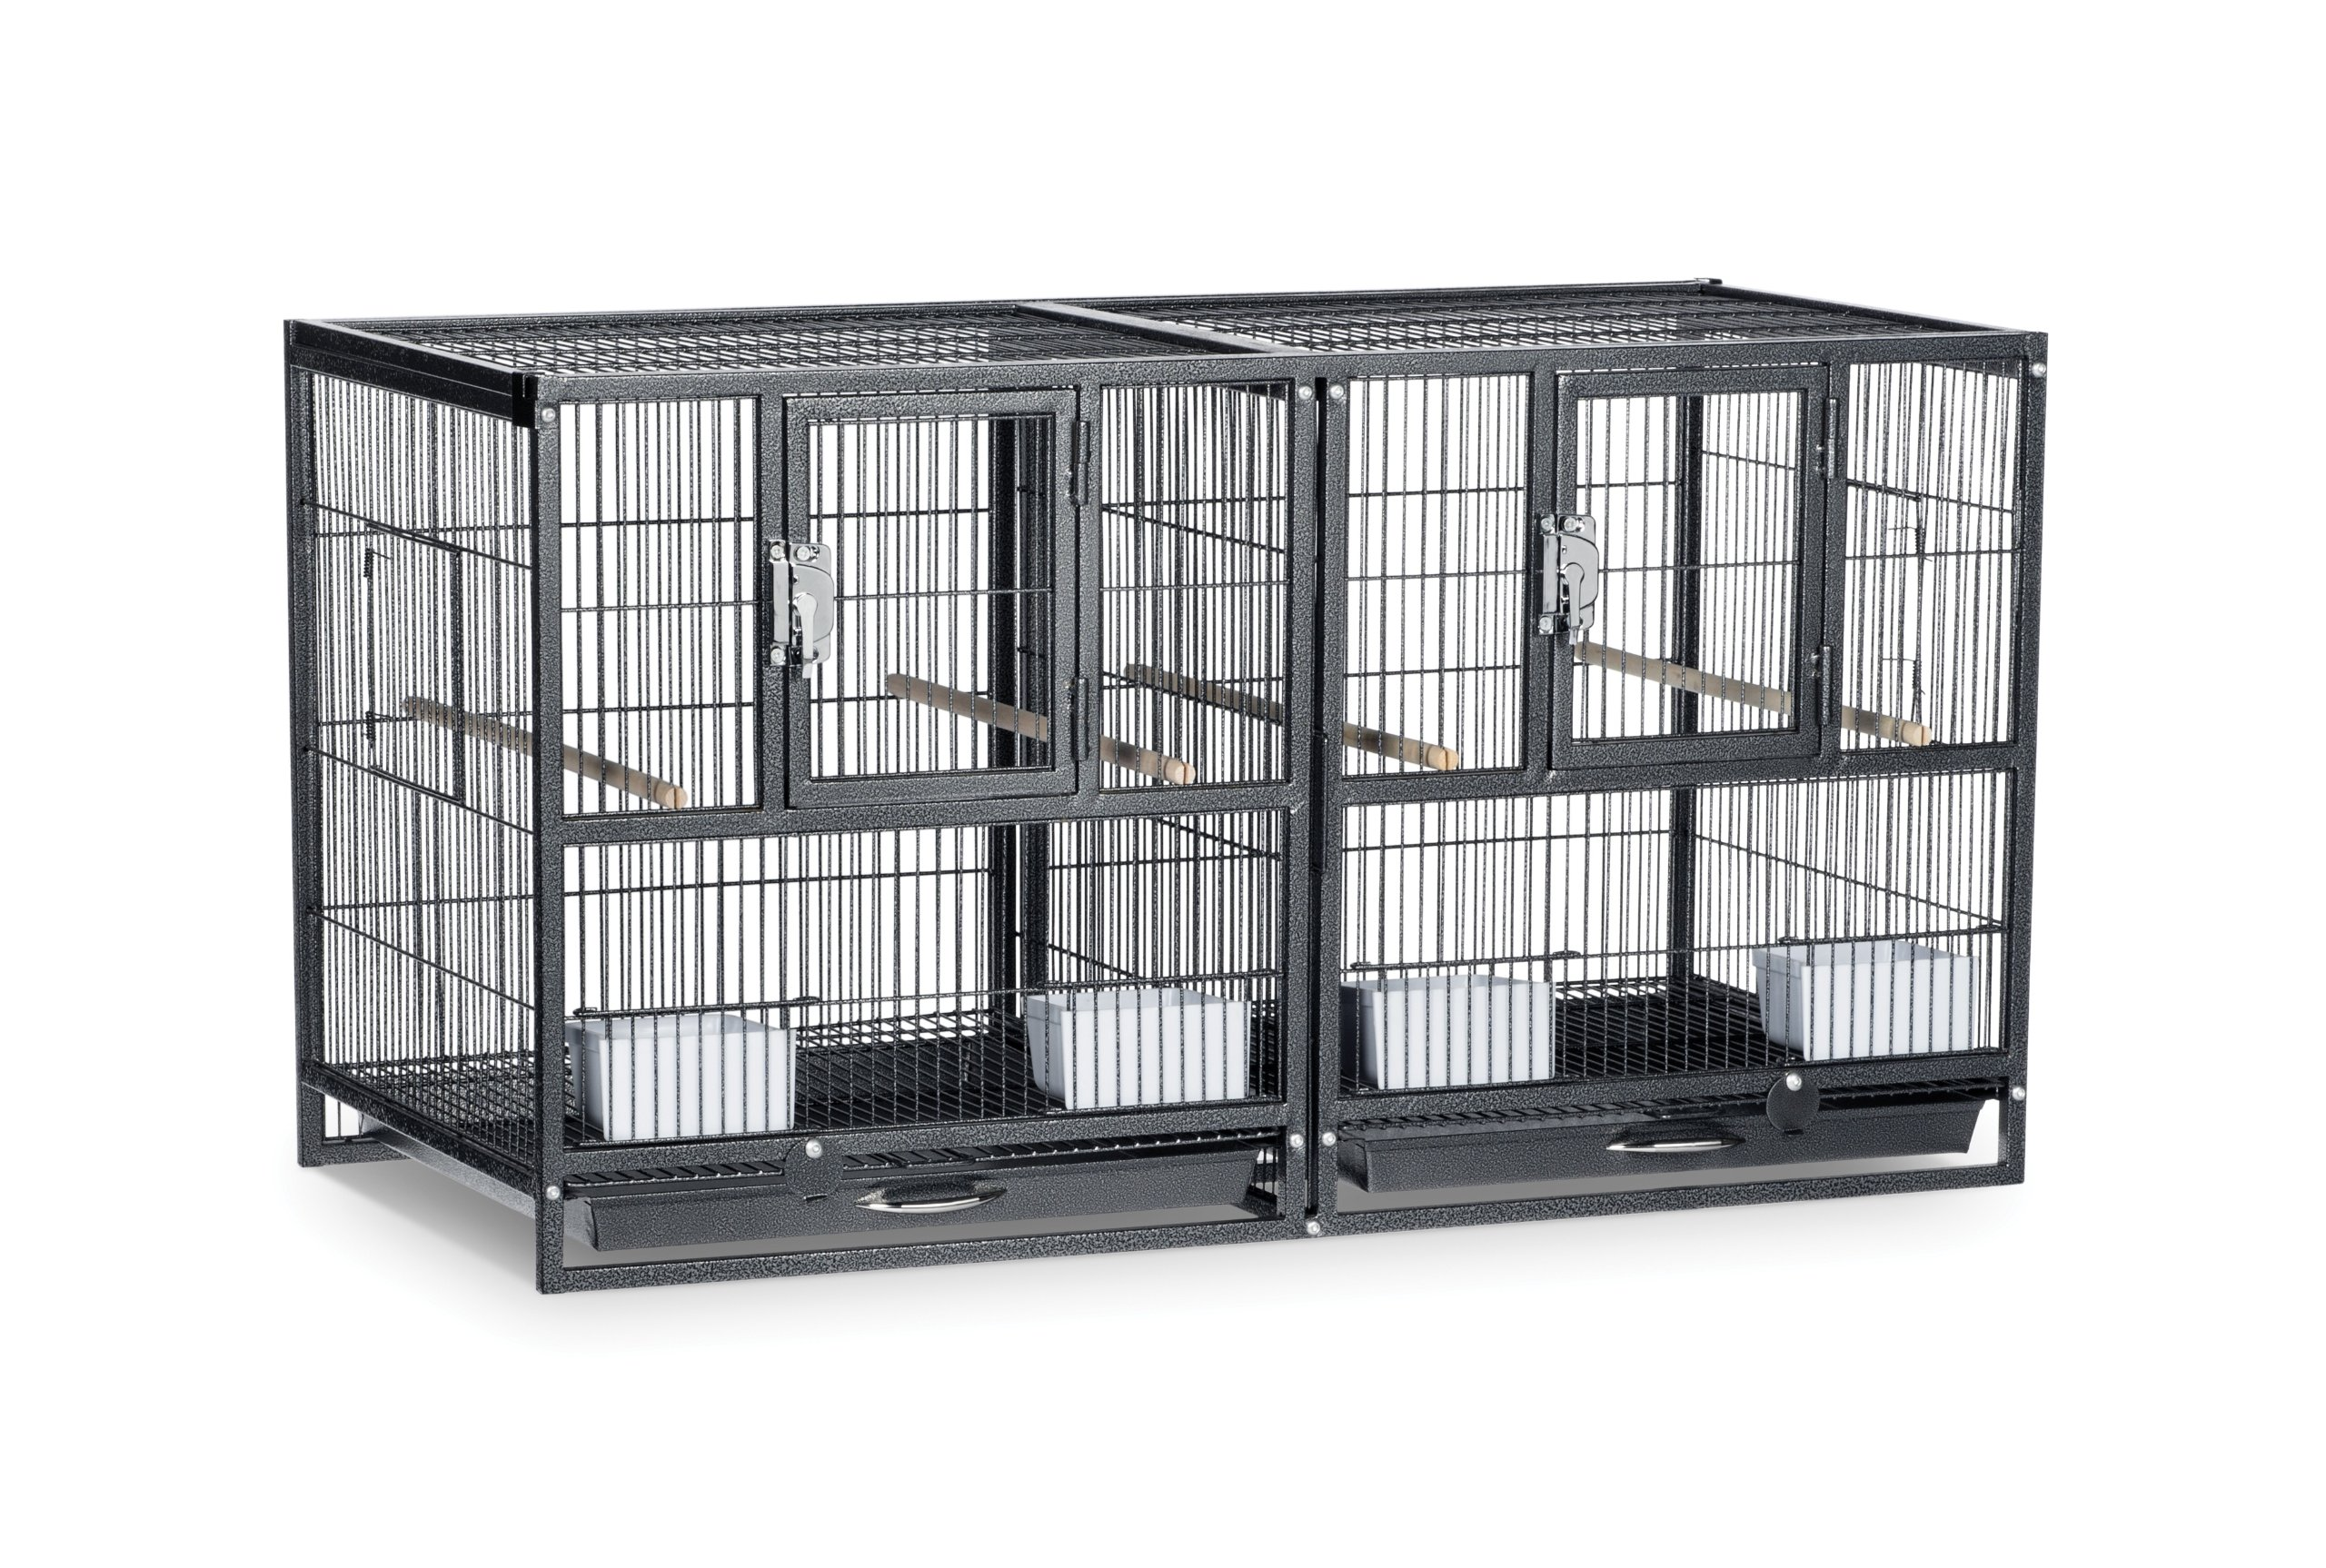 Prevue Pet Products F075 Hampton Deluxe Divided Breeder Cage by Prevue Pet Products